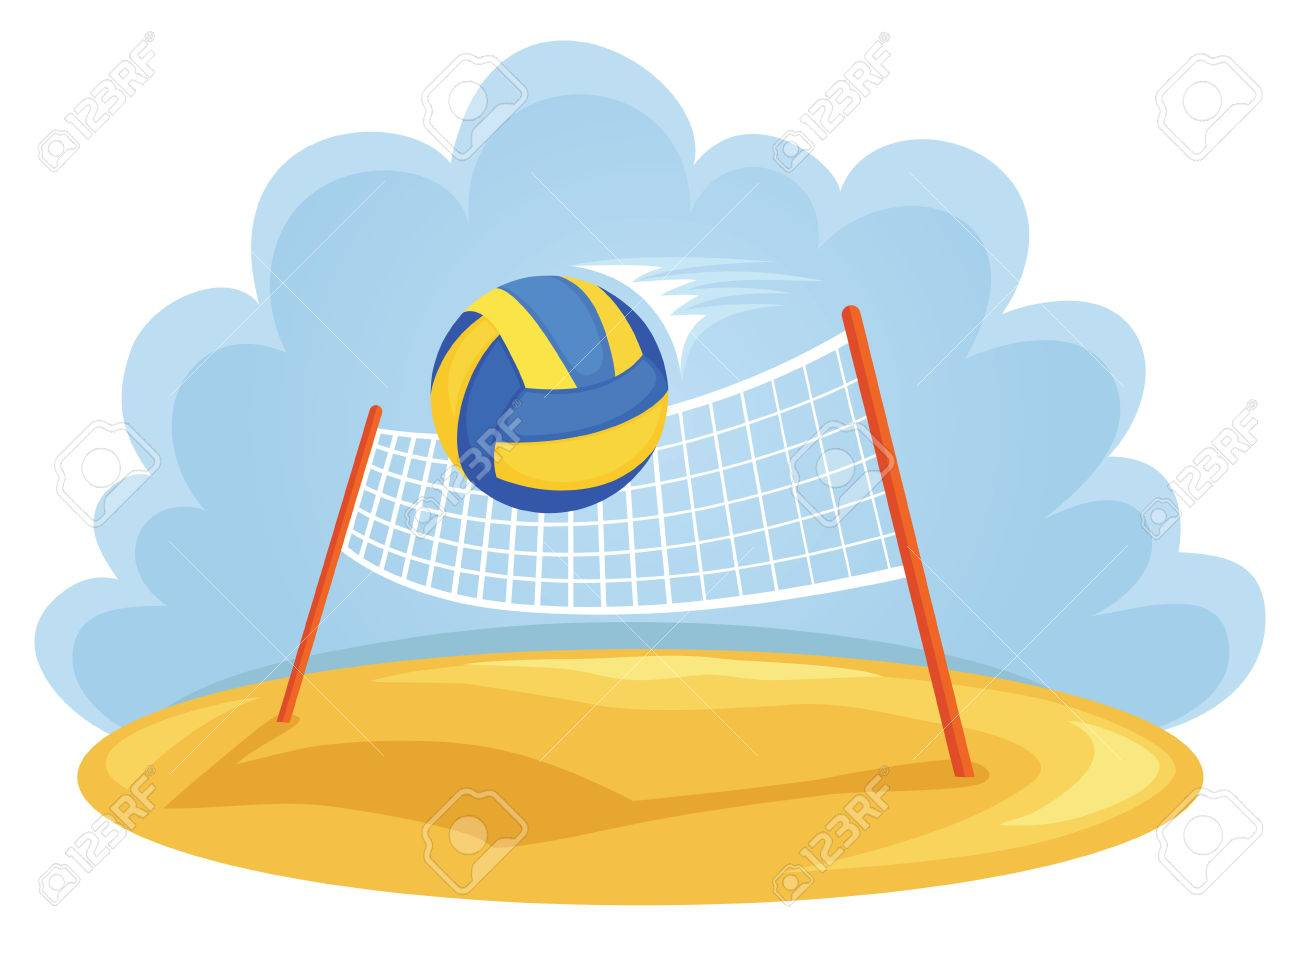 Vector Illustartion Of Ball And Volleyball Net Royalty Free Cliparts Vectors And Stock Illustration Image 57900852